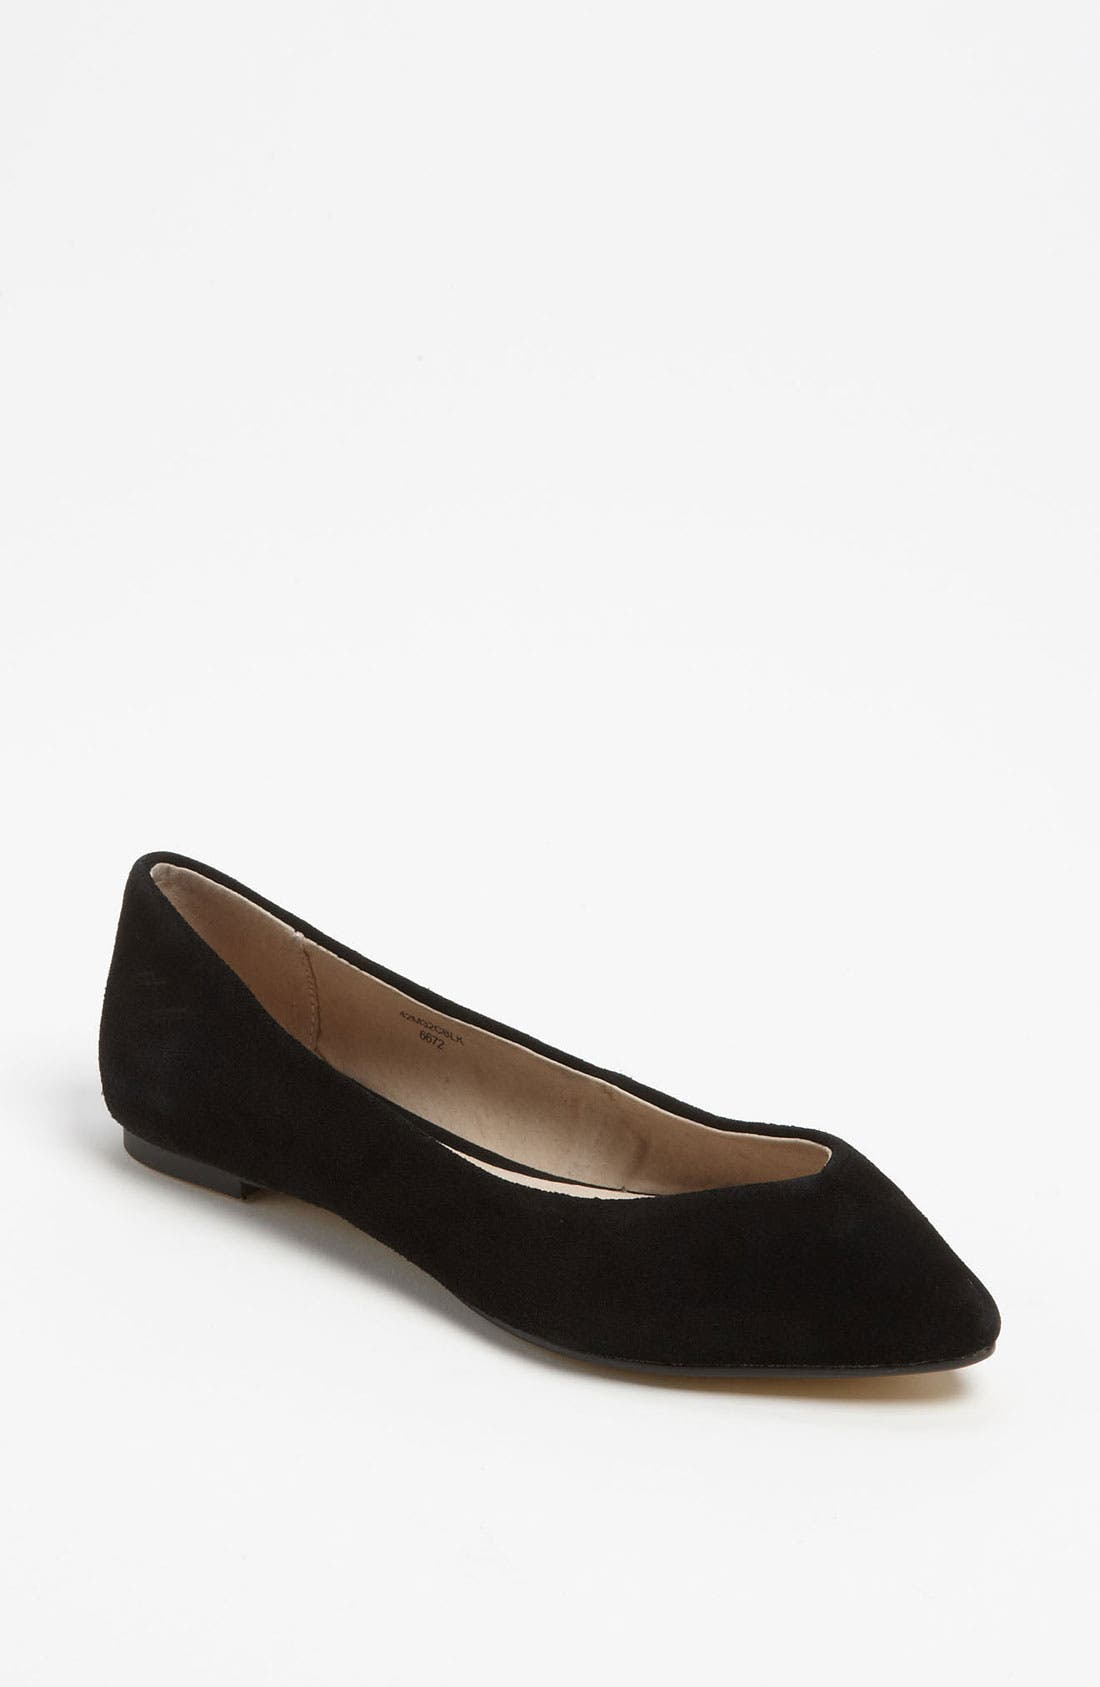 Alternate Image 1 Selected - Topshop 'Milly' Flat